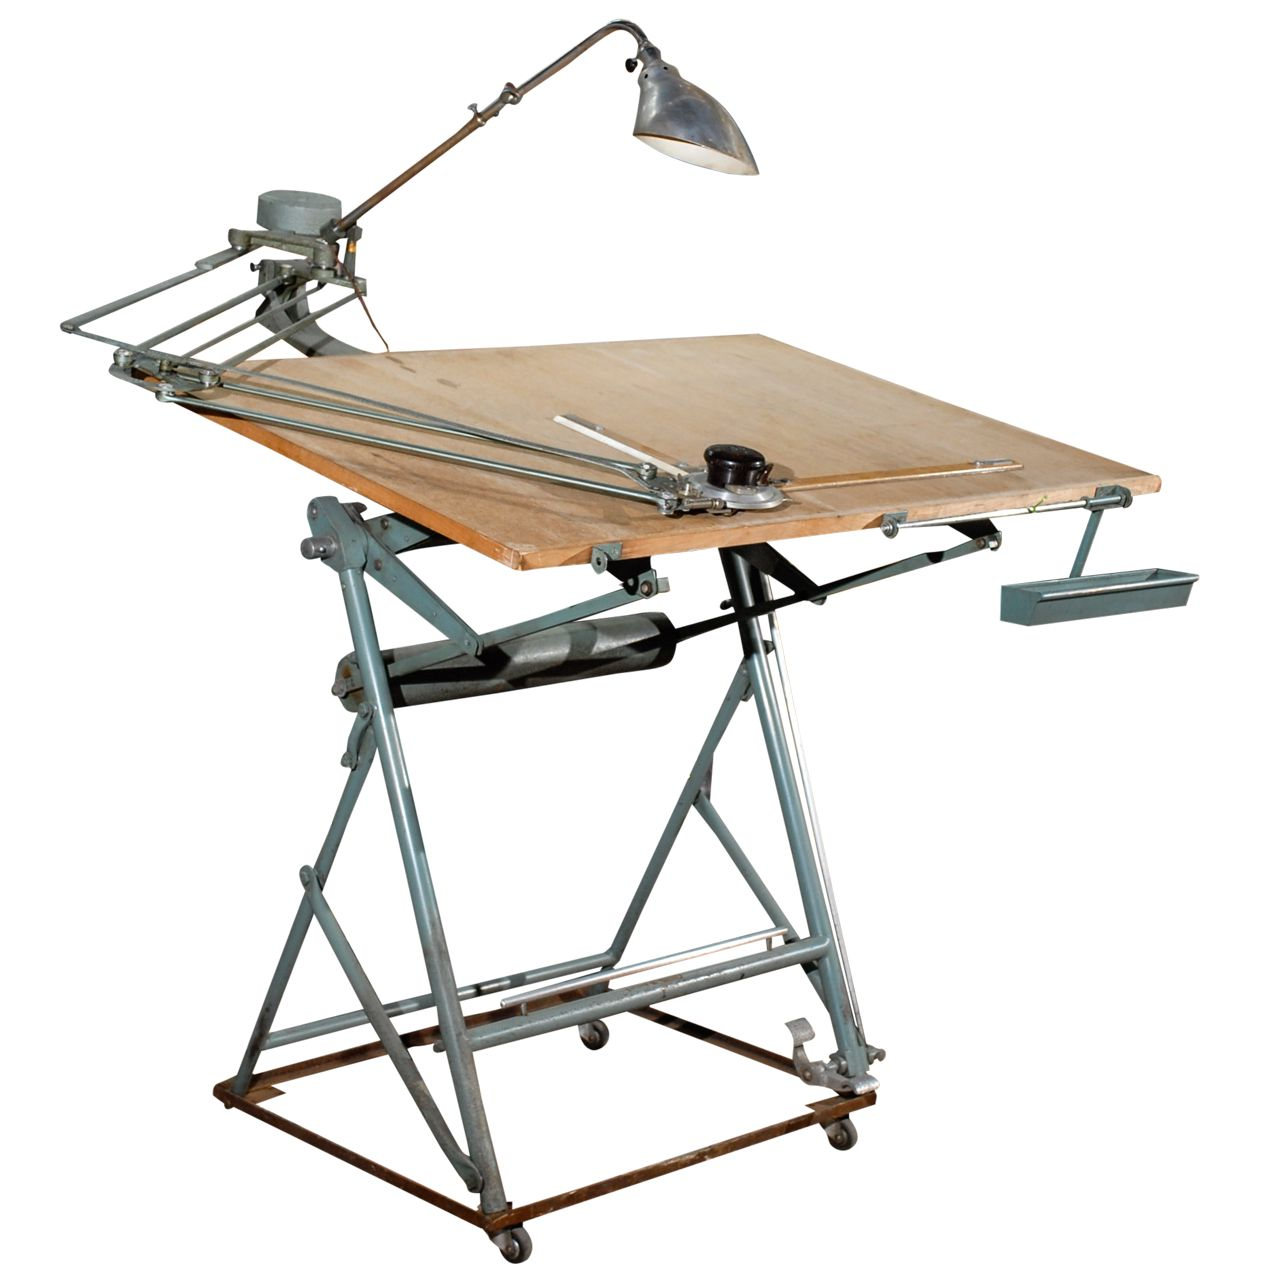 Modern drafting table - Isis Drafting Table With Original Components